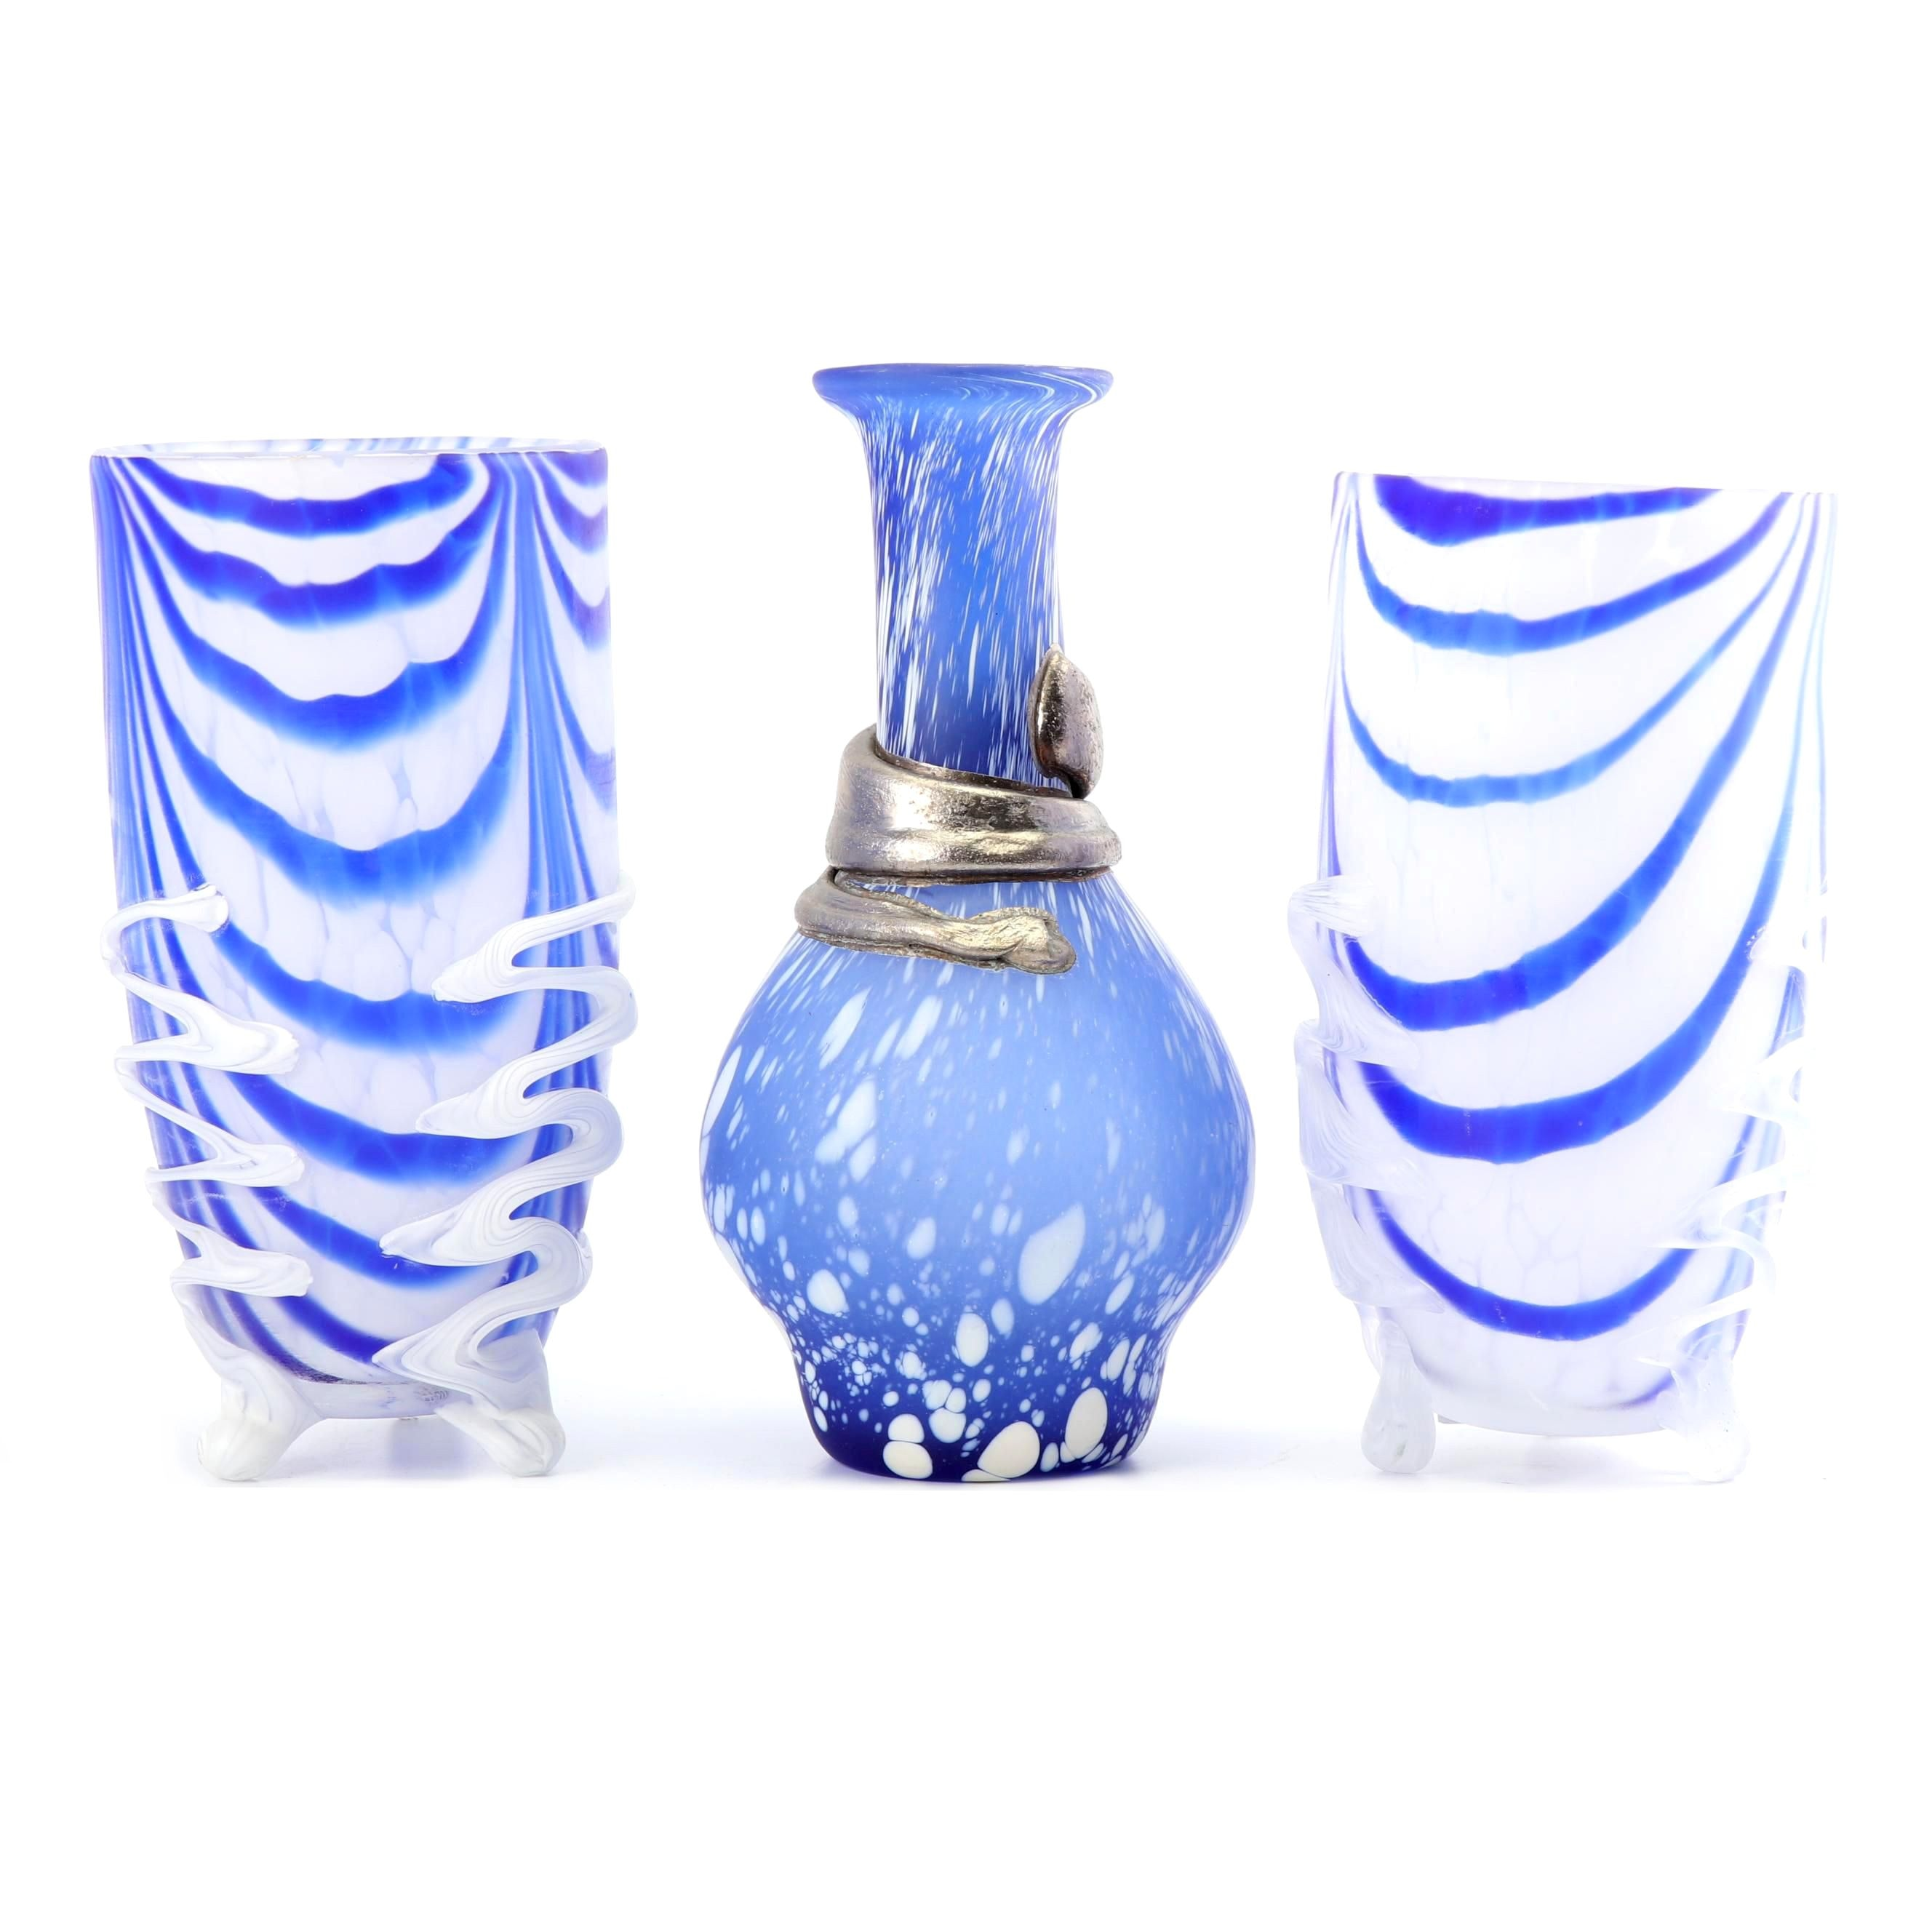 Blue and White Decorative Glass Vases